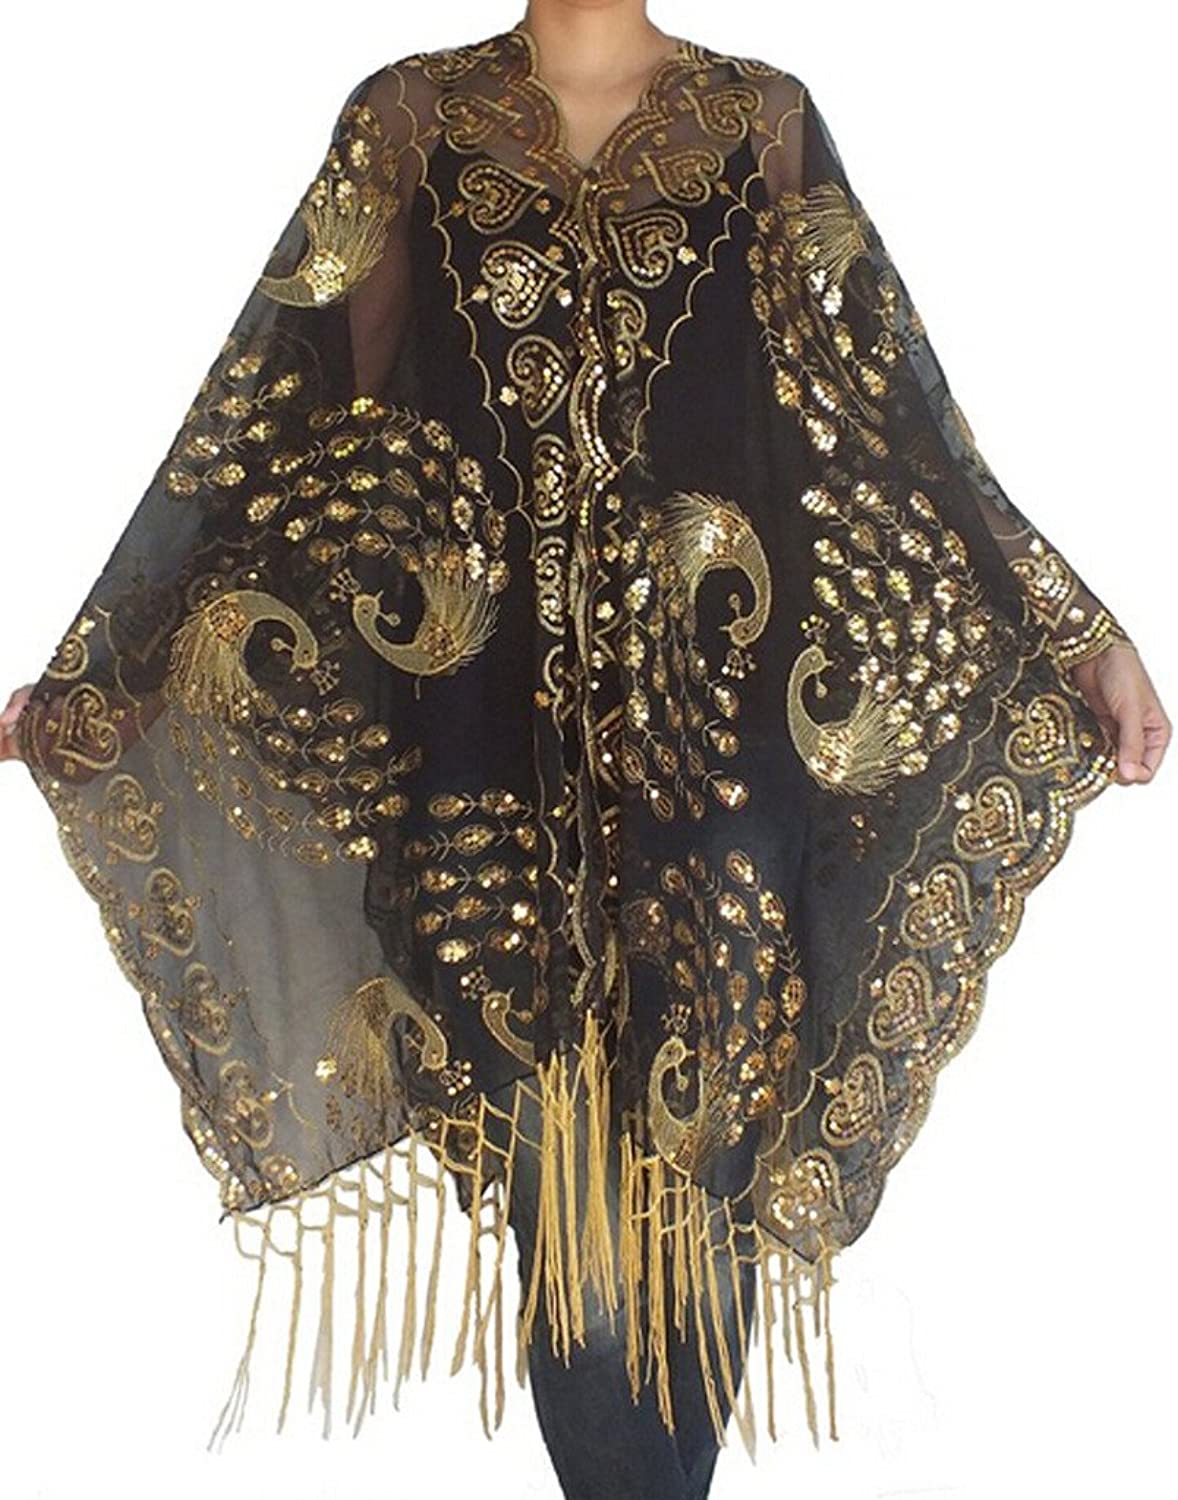 Vintage Inspired Halloween Costumes  Peacock Phoenix Embroidery Sequins Wedding Scarf Shawls $19.99 AT vintagedancer.com